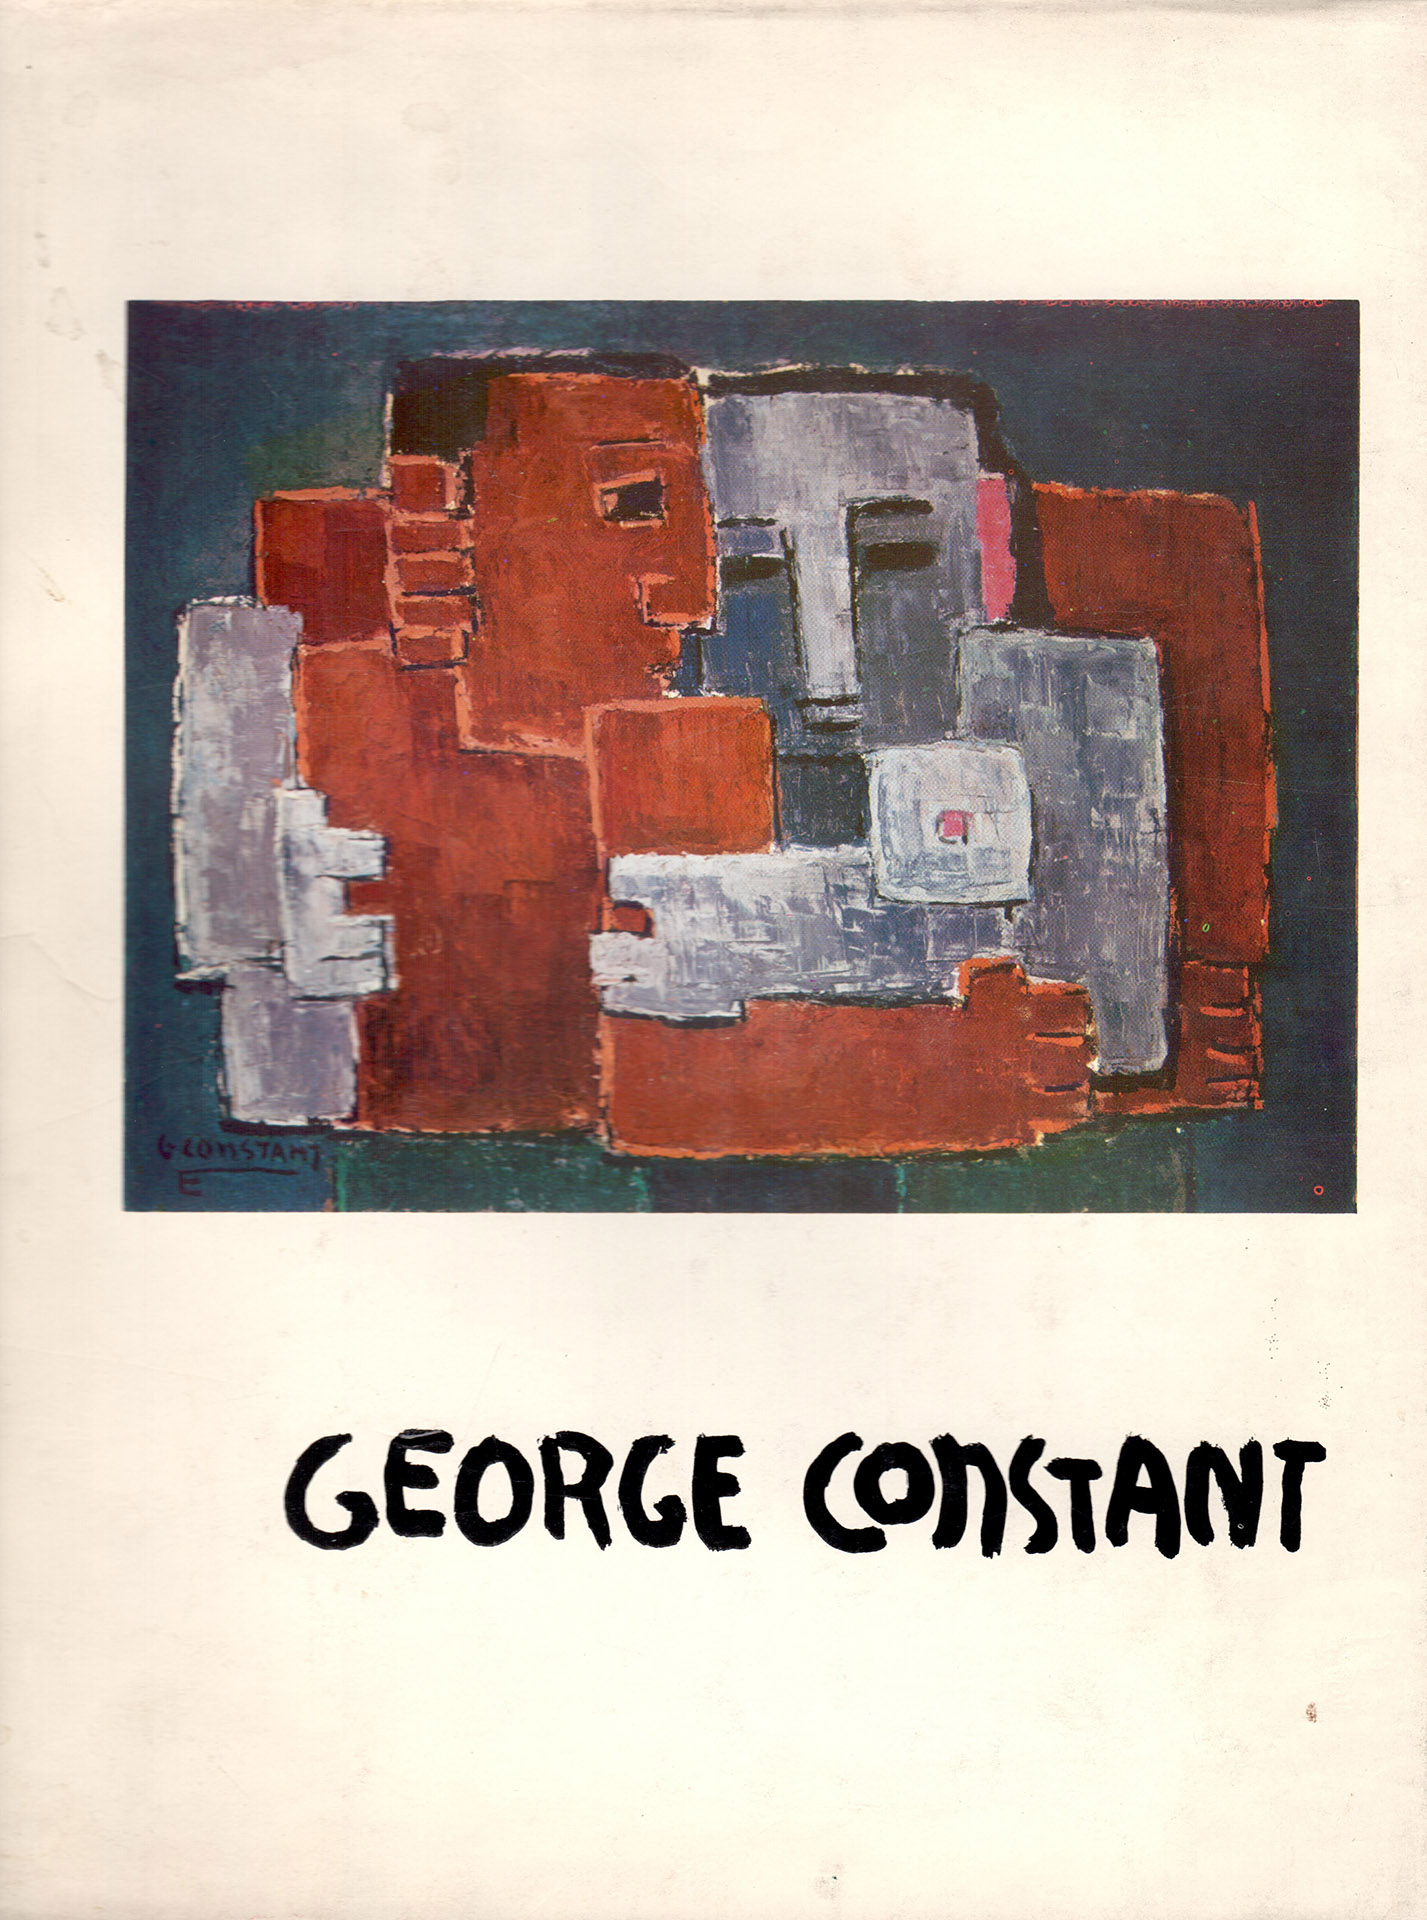 1. GEORGE CONSTANT - BREUNING, PRESTON - ARTS INC[1960]